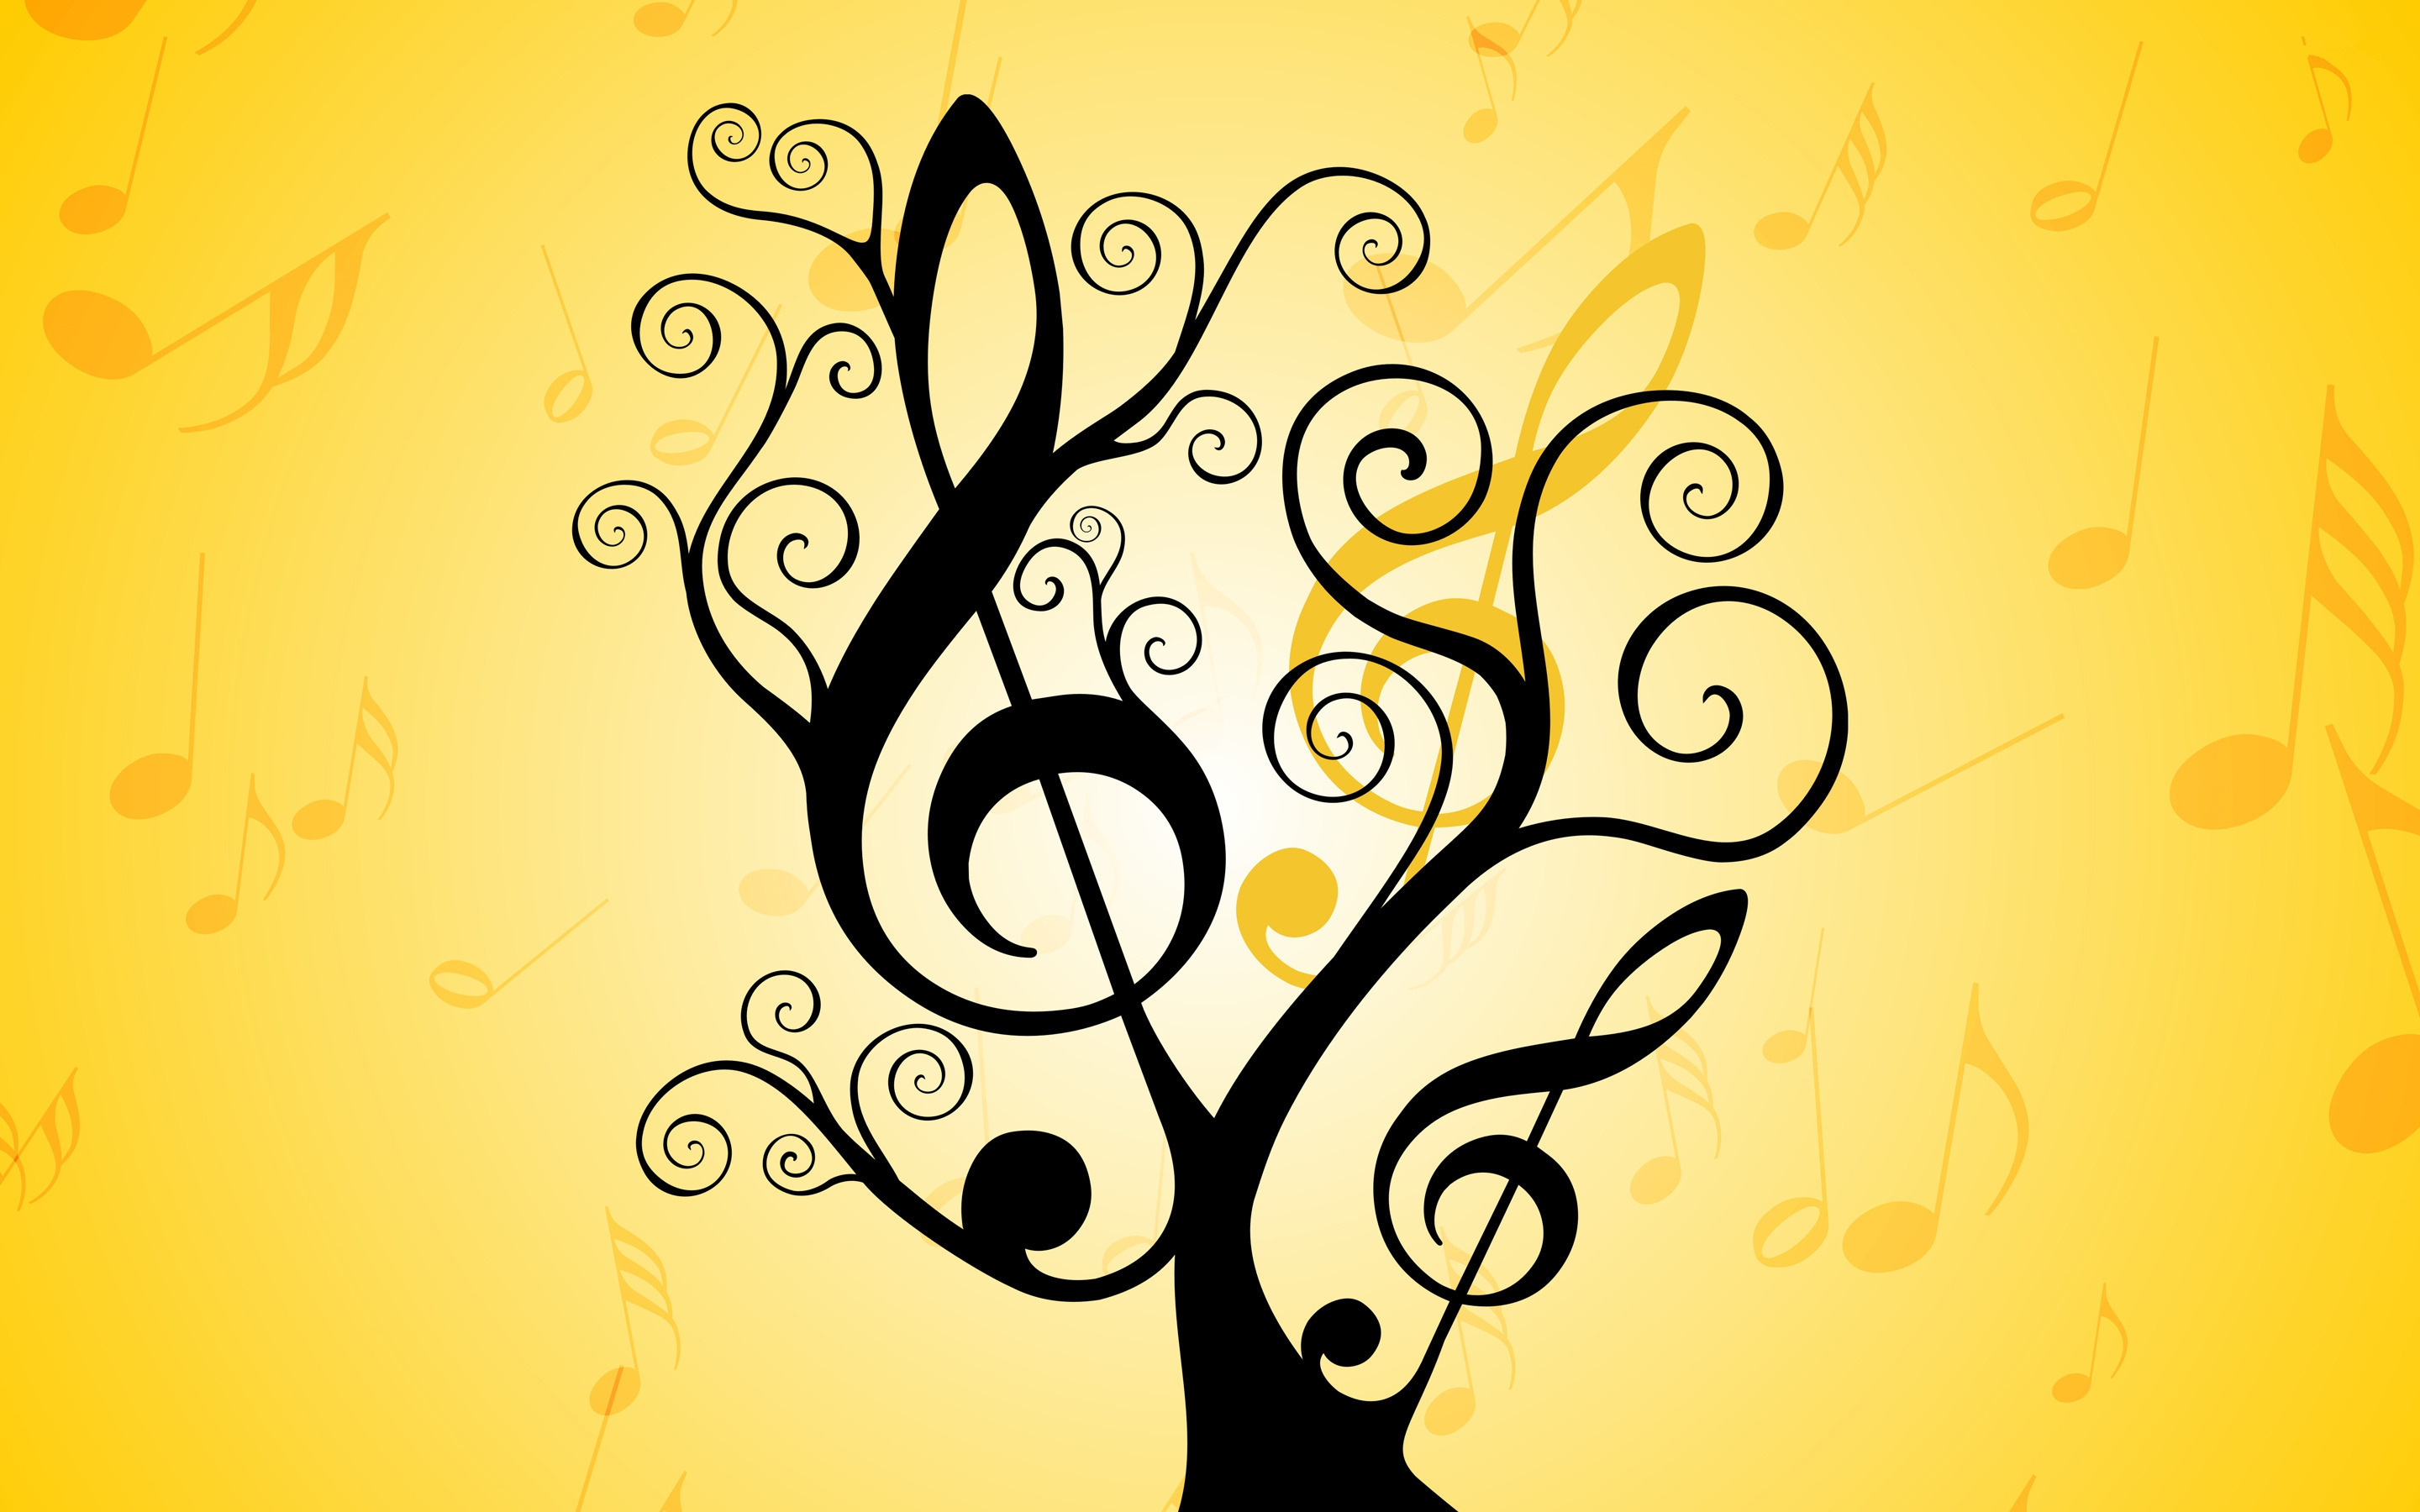 Colorful Music Notes Wallpaper | Free download best Colorful Music ...